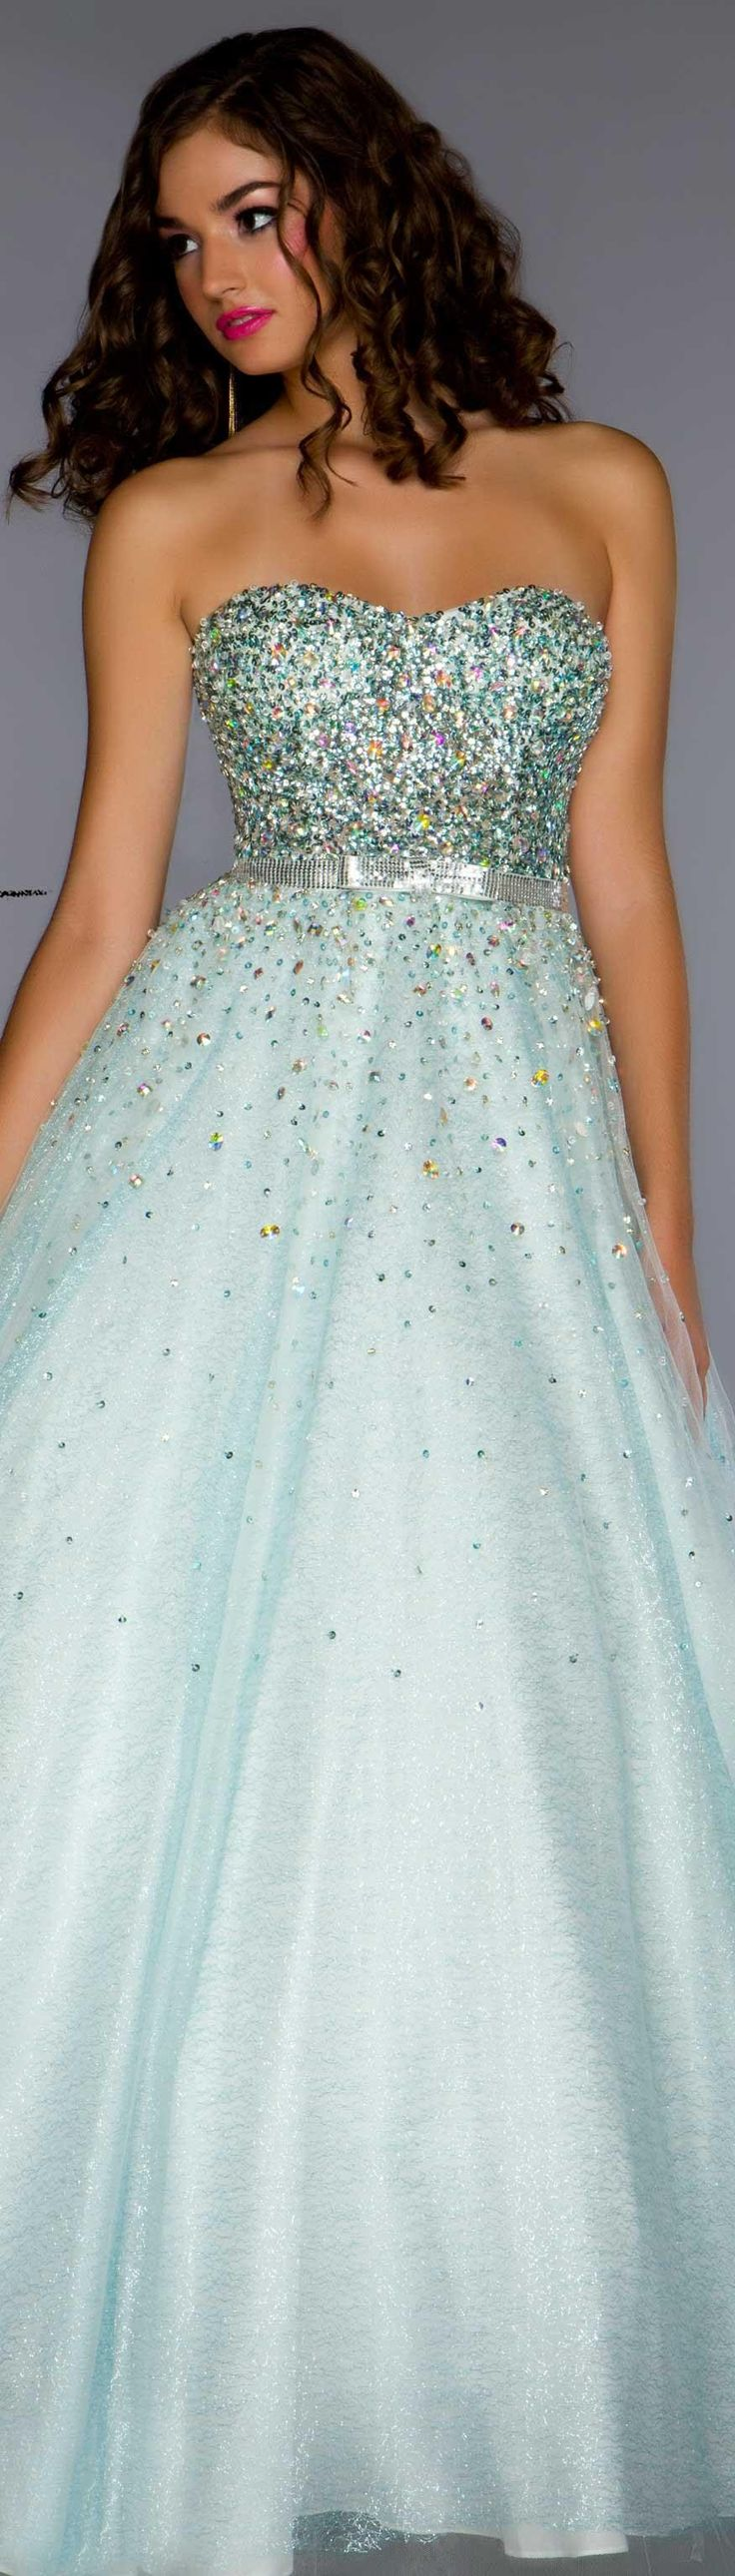 best fashion gorgeous dresses and gowns images on pinterest